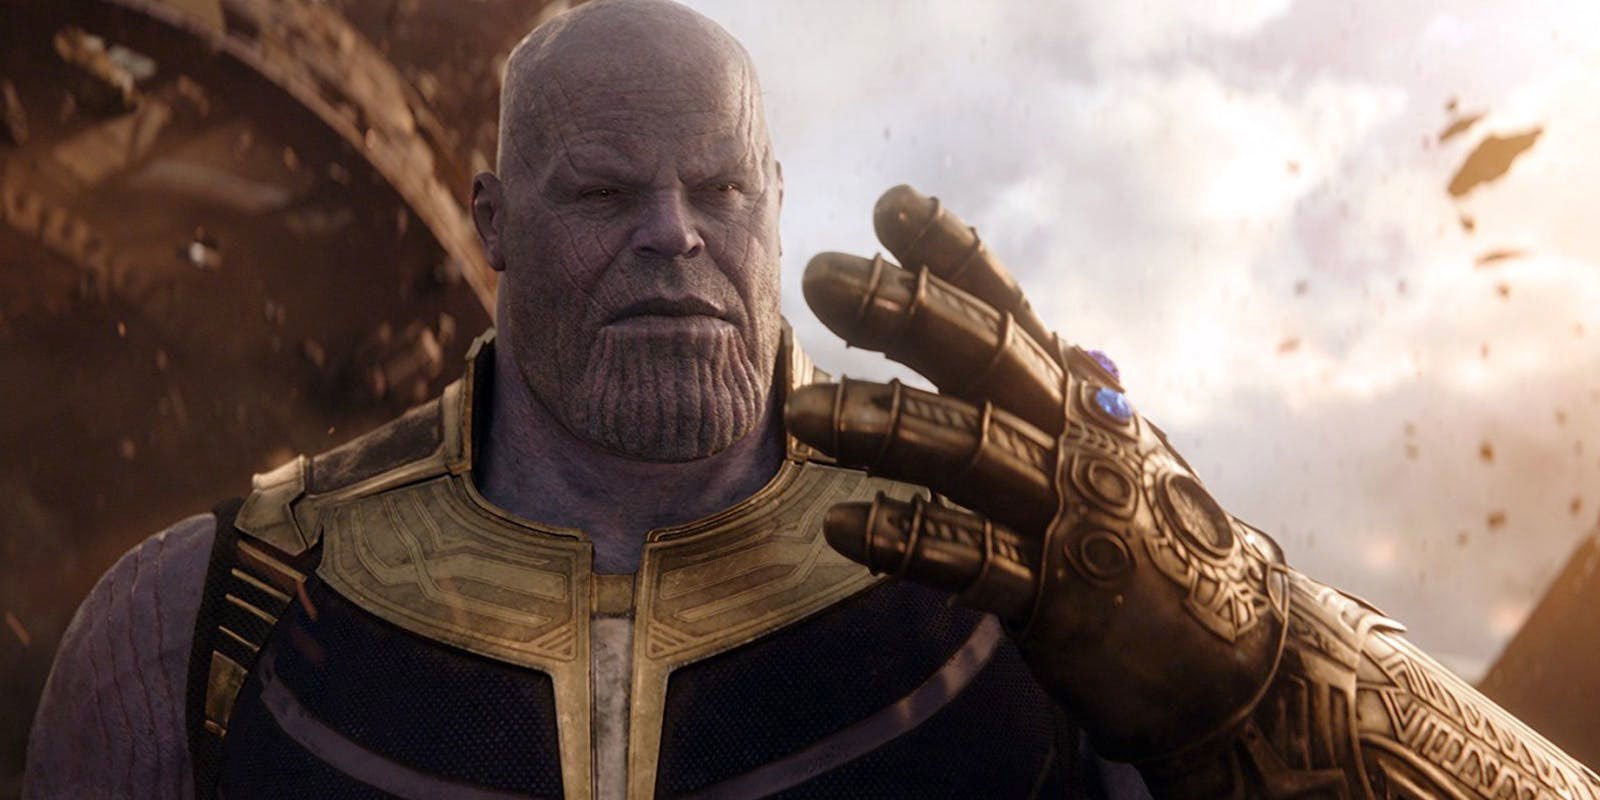 Will Thanos be back in Avengers 4?